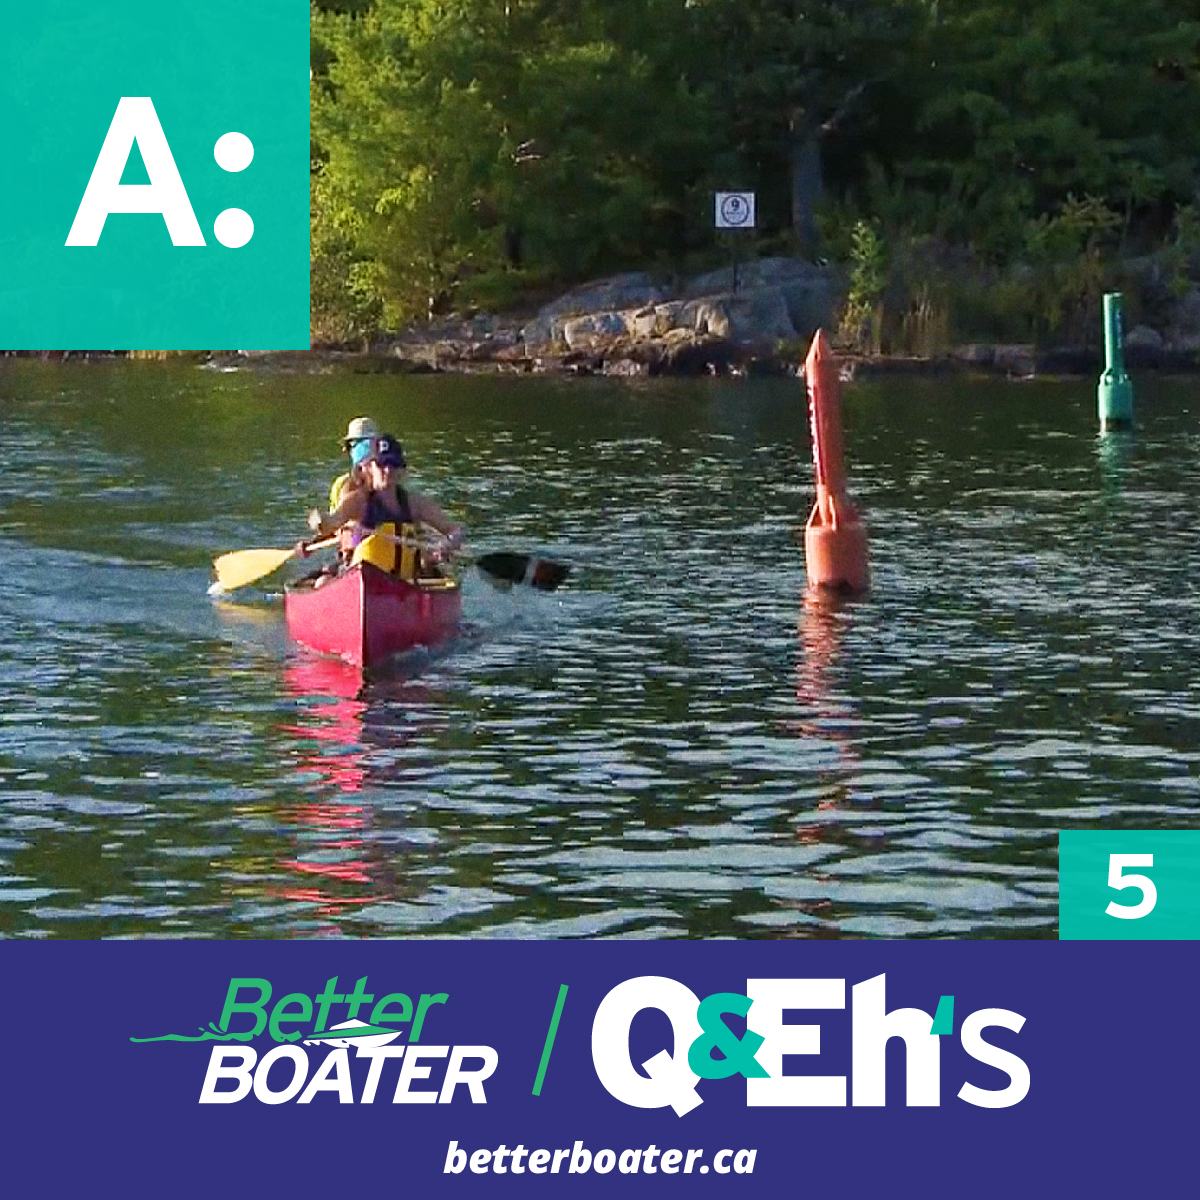 https://betterboater.ca/Q&Eh:%20Paddling%20Rules